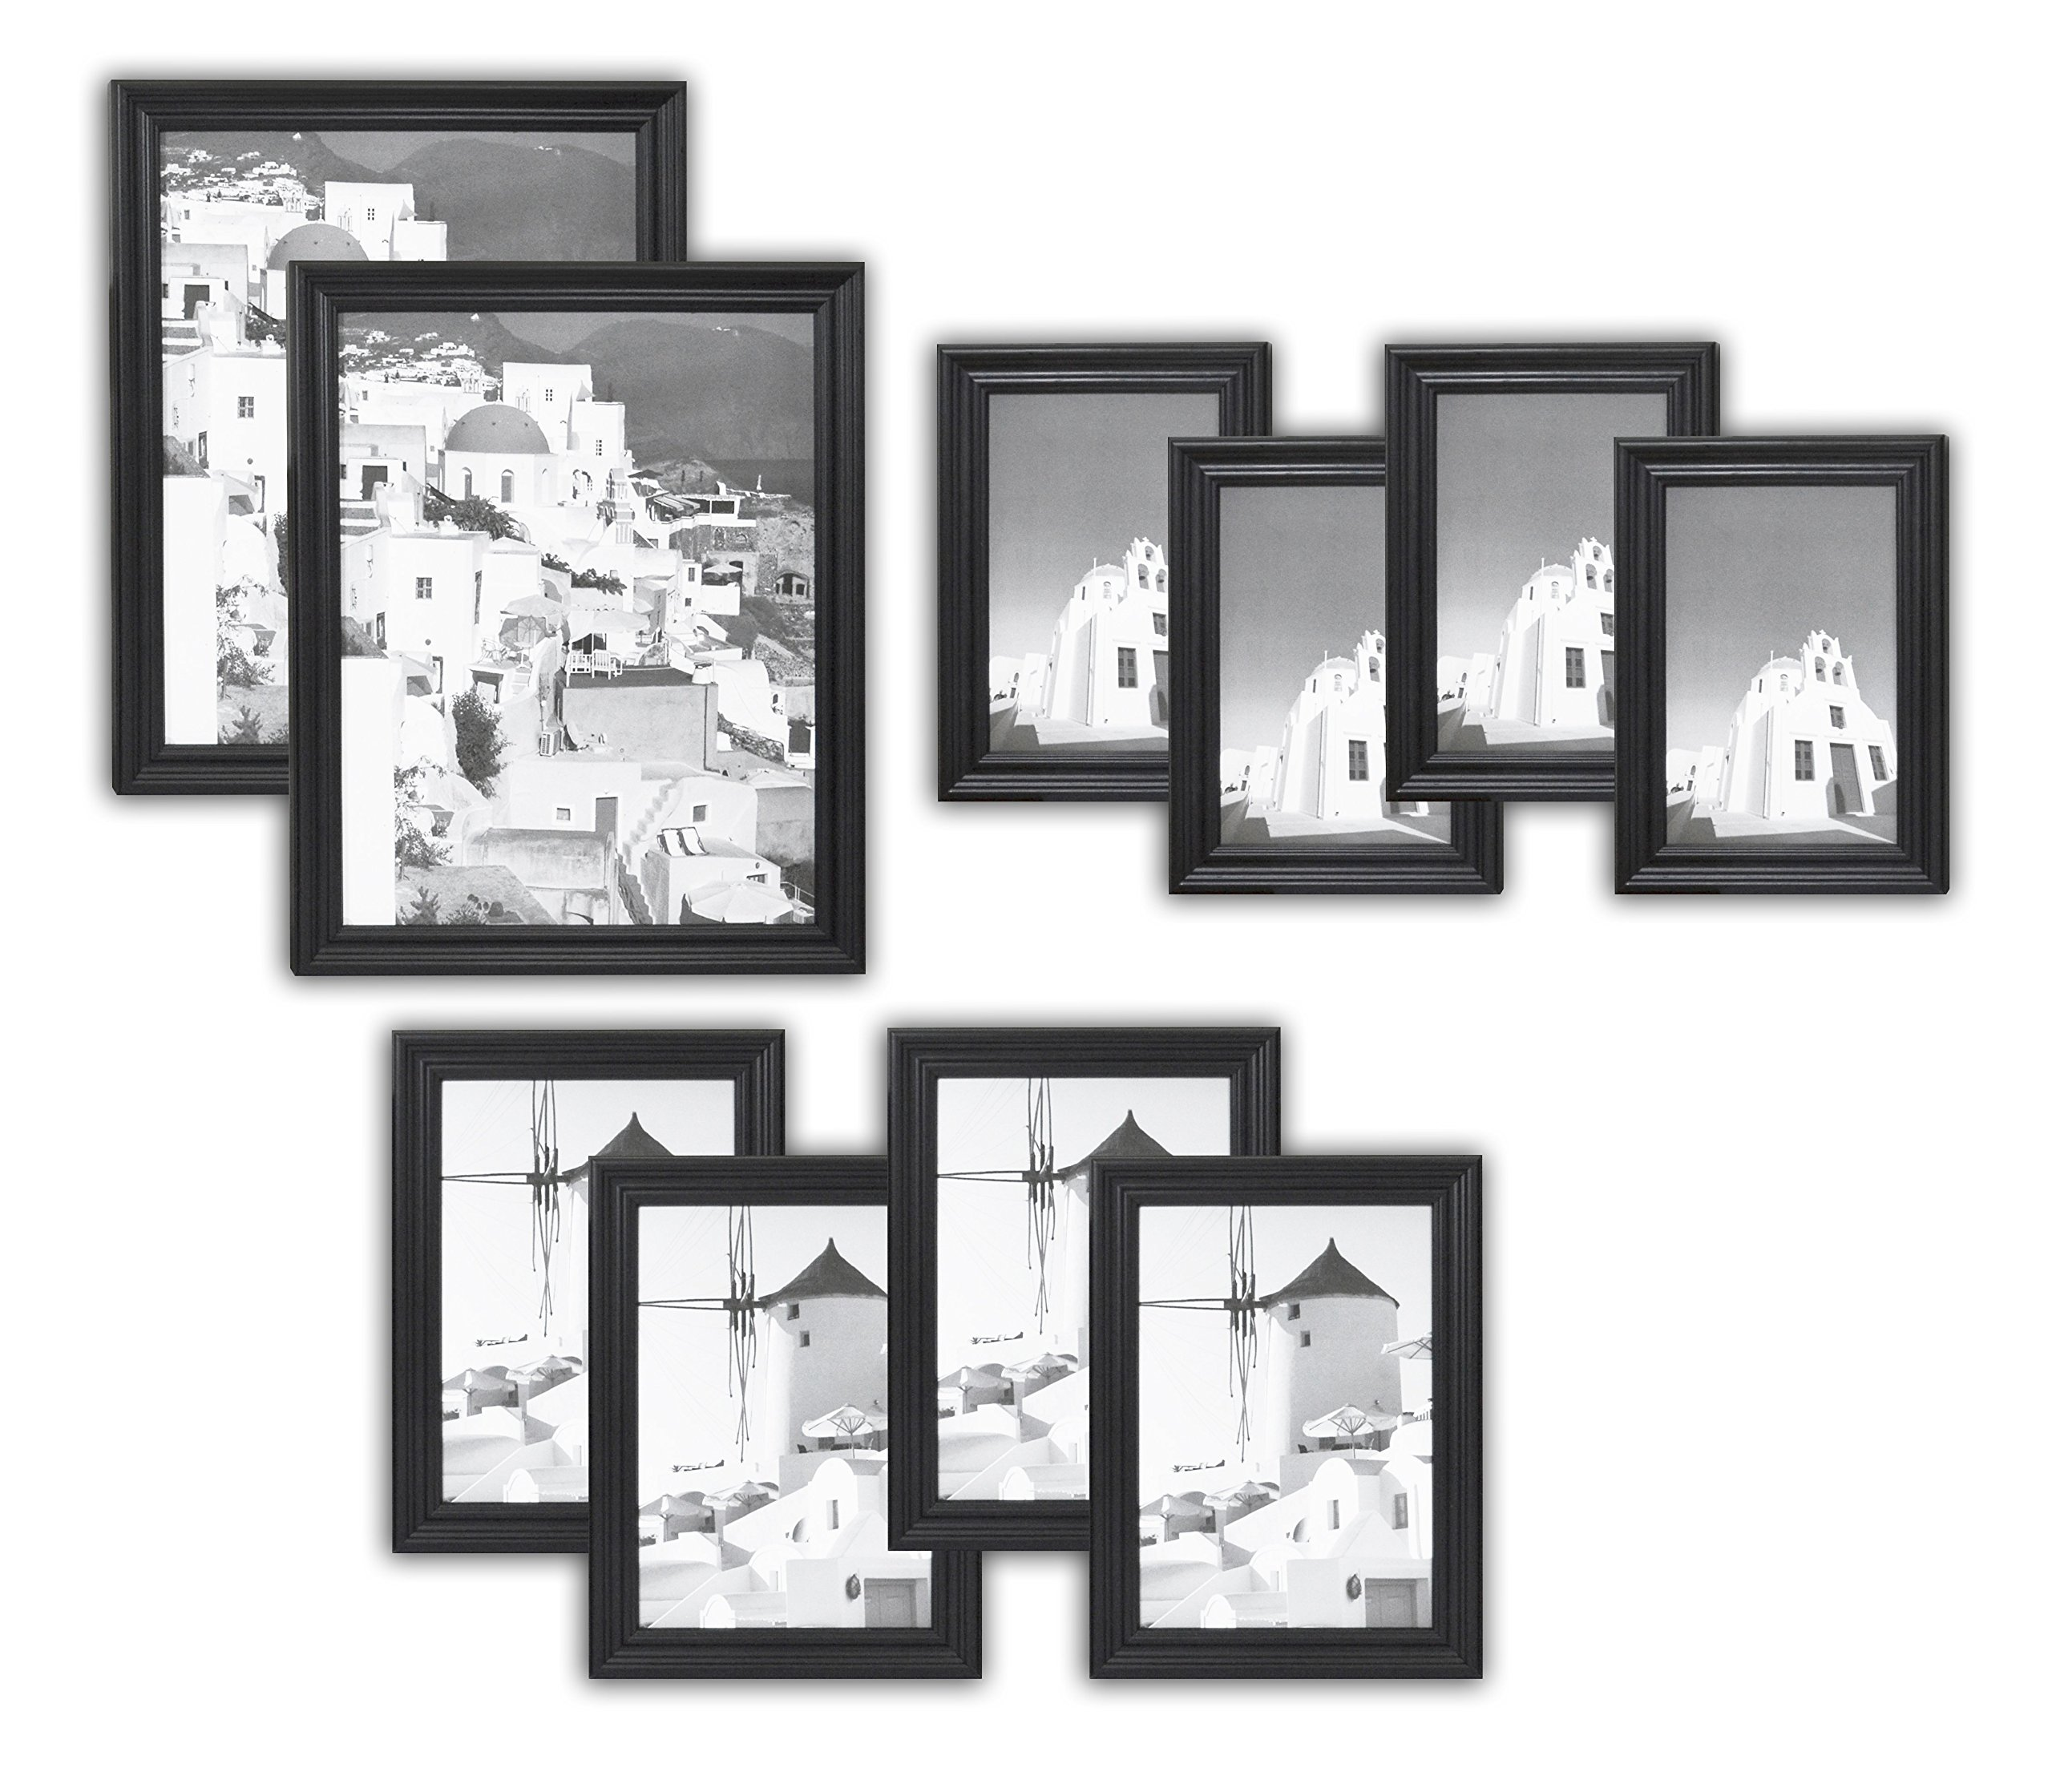 Golden State Art, Wall Frame Collection, Set of 10, Solid Wood Photo Frame, Black by Golden State Art